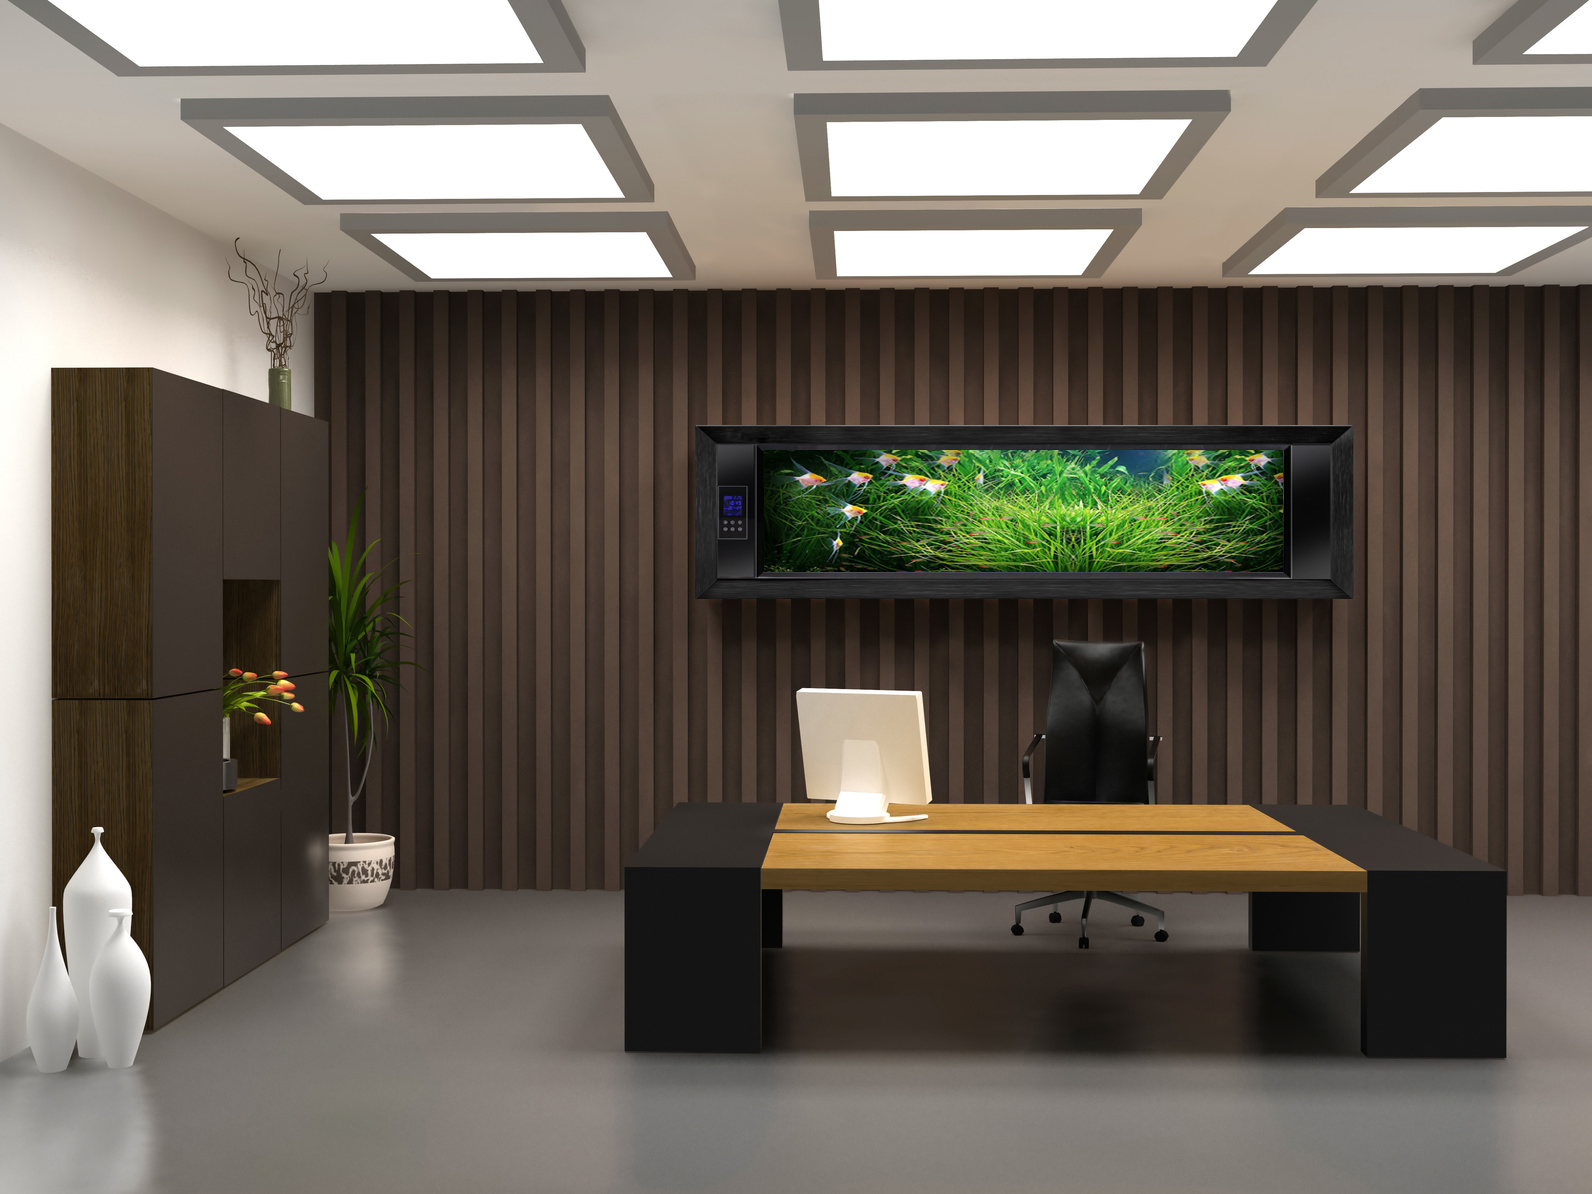 Elegant ceo office design bellisima for Luxury office interior